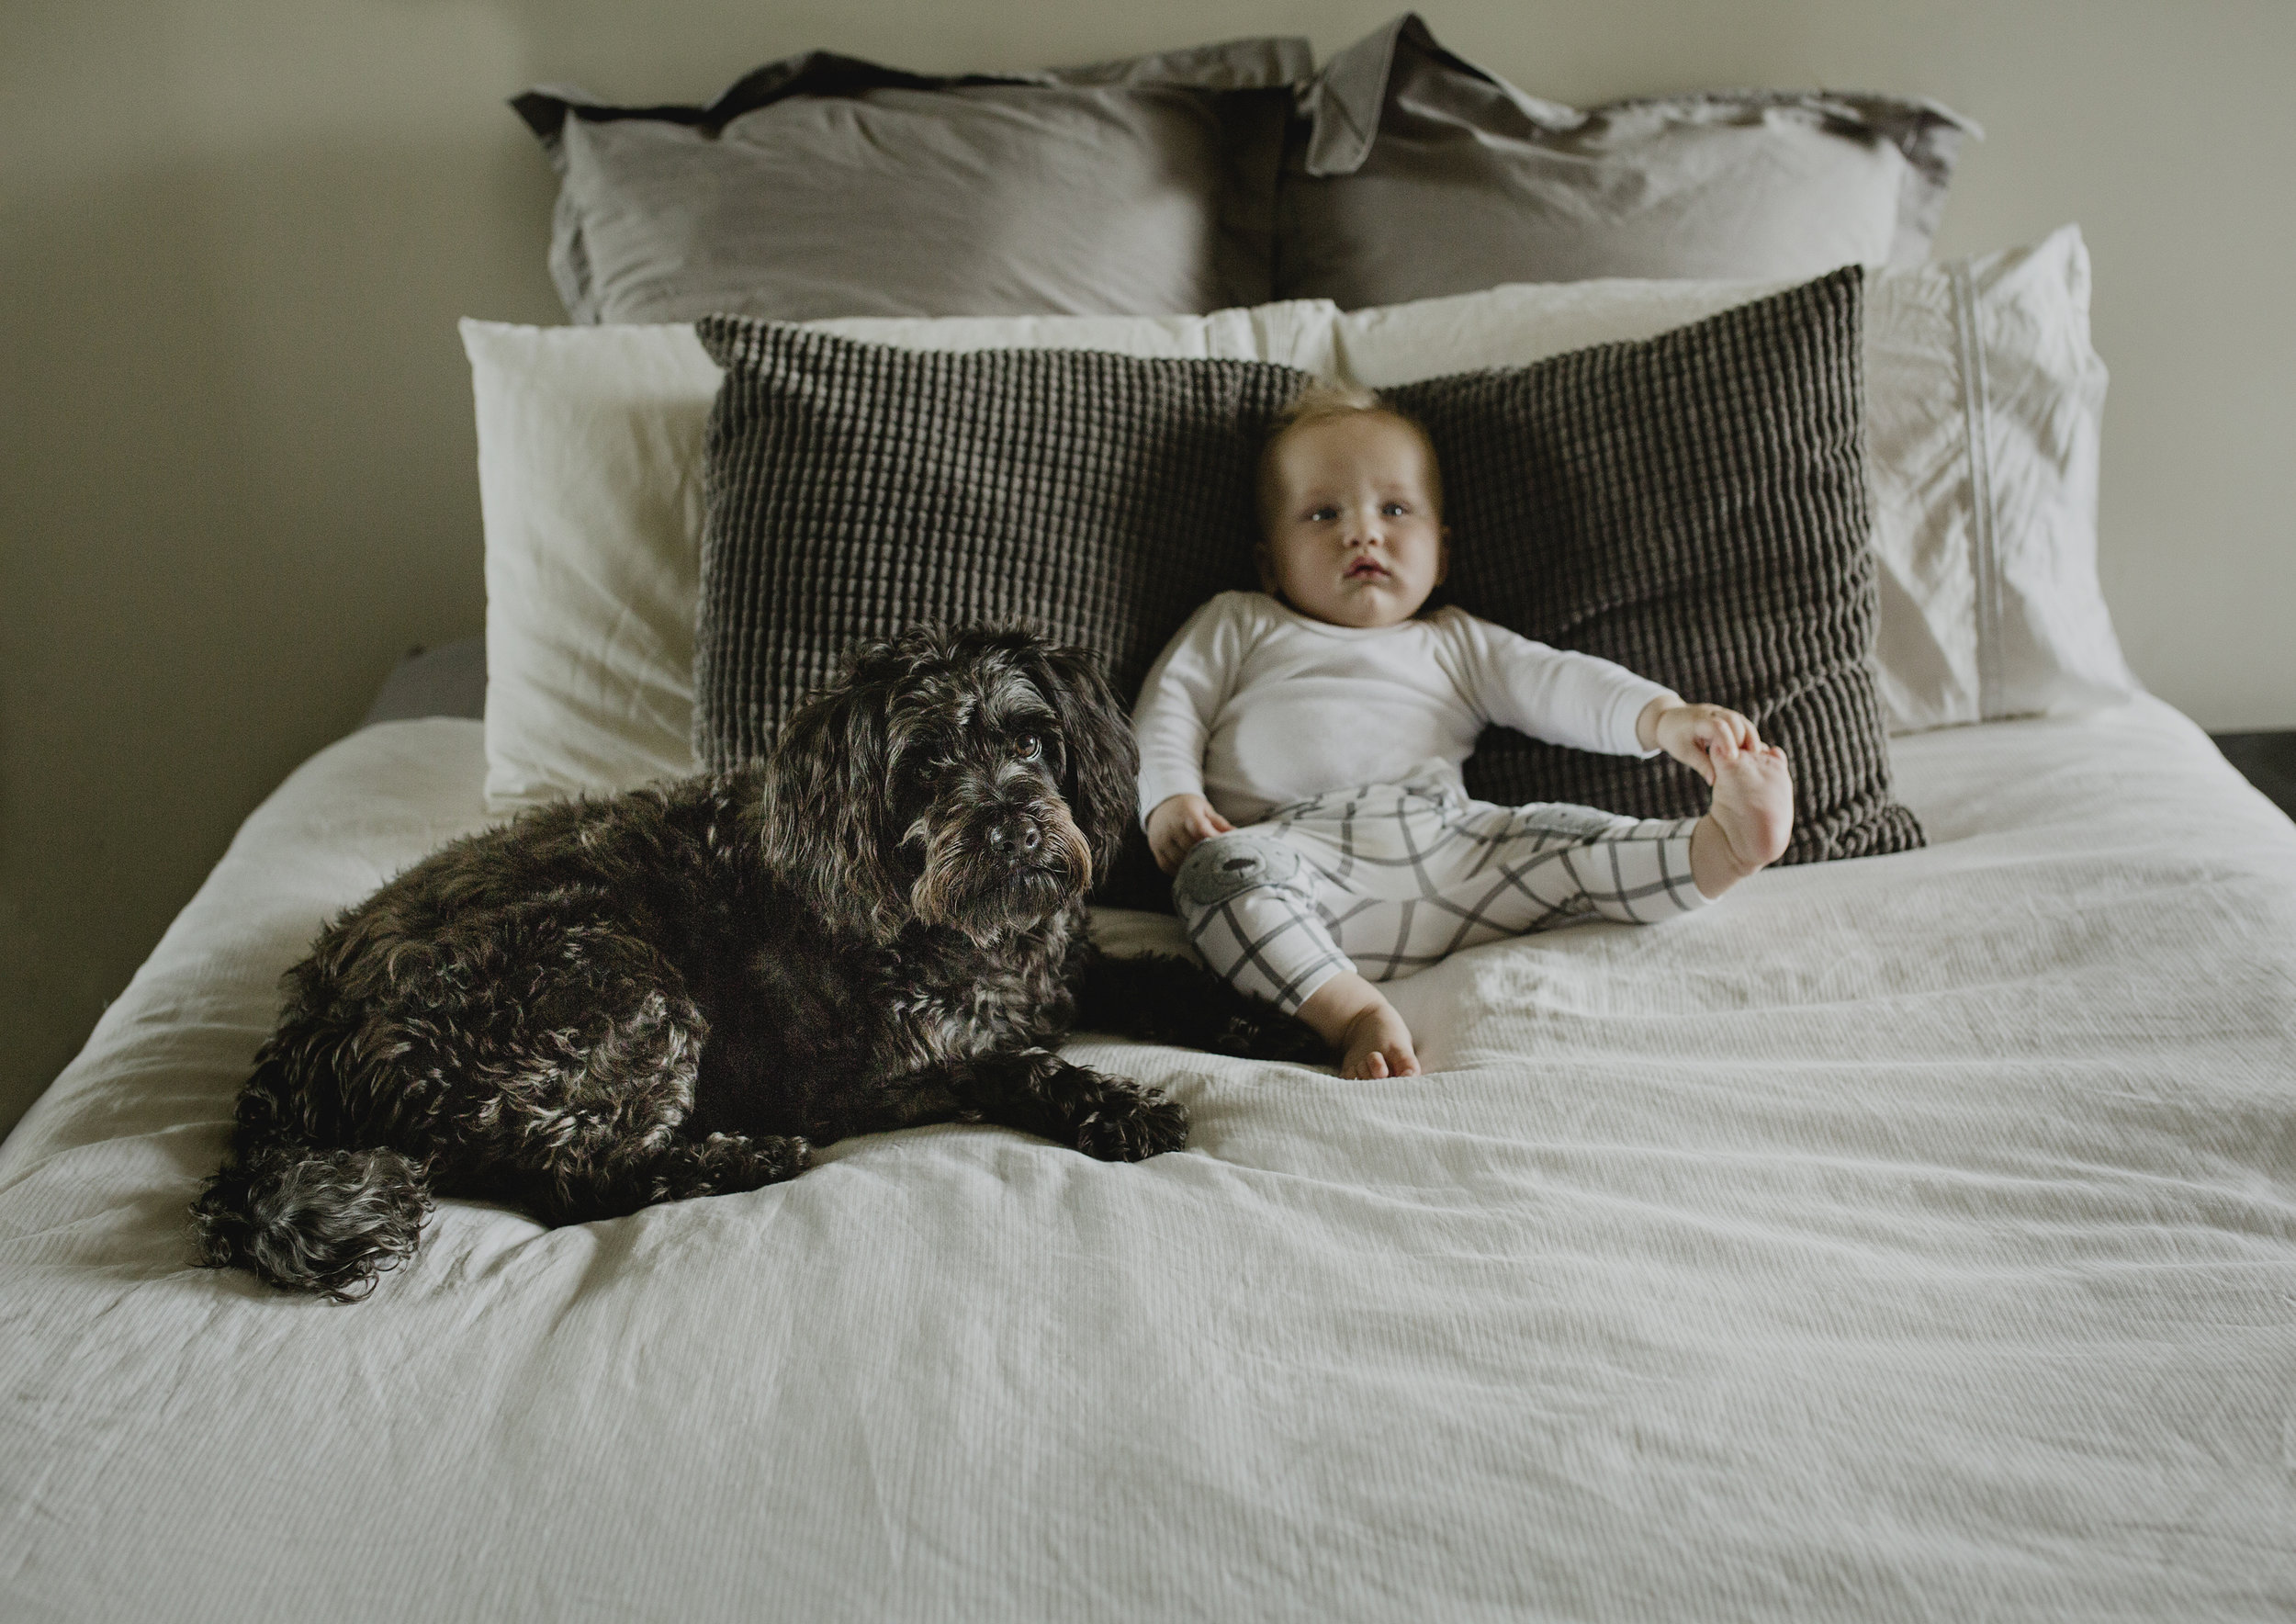 6 month old baby boy and his dog